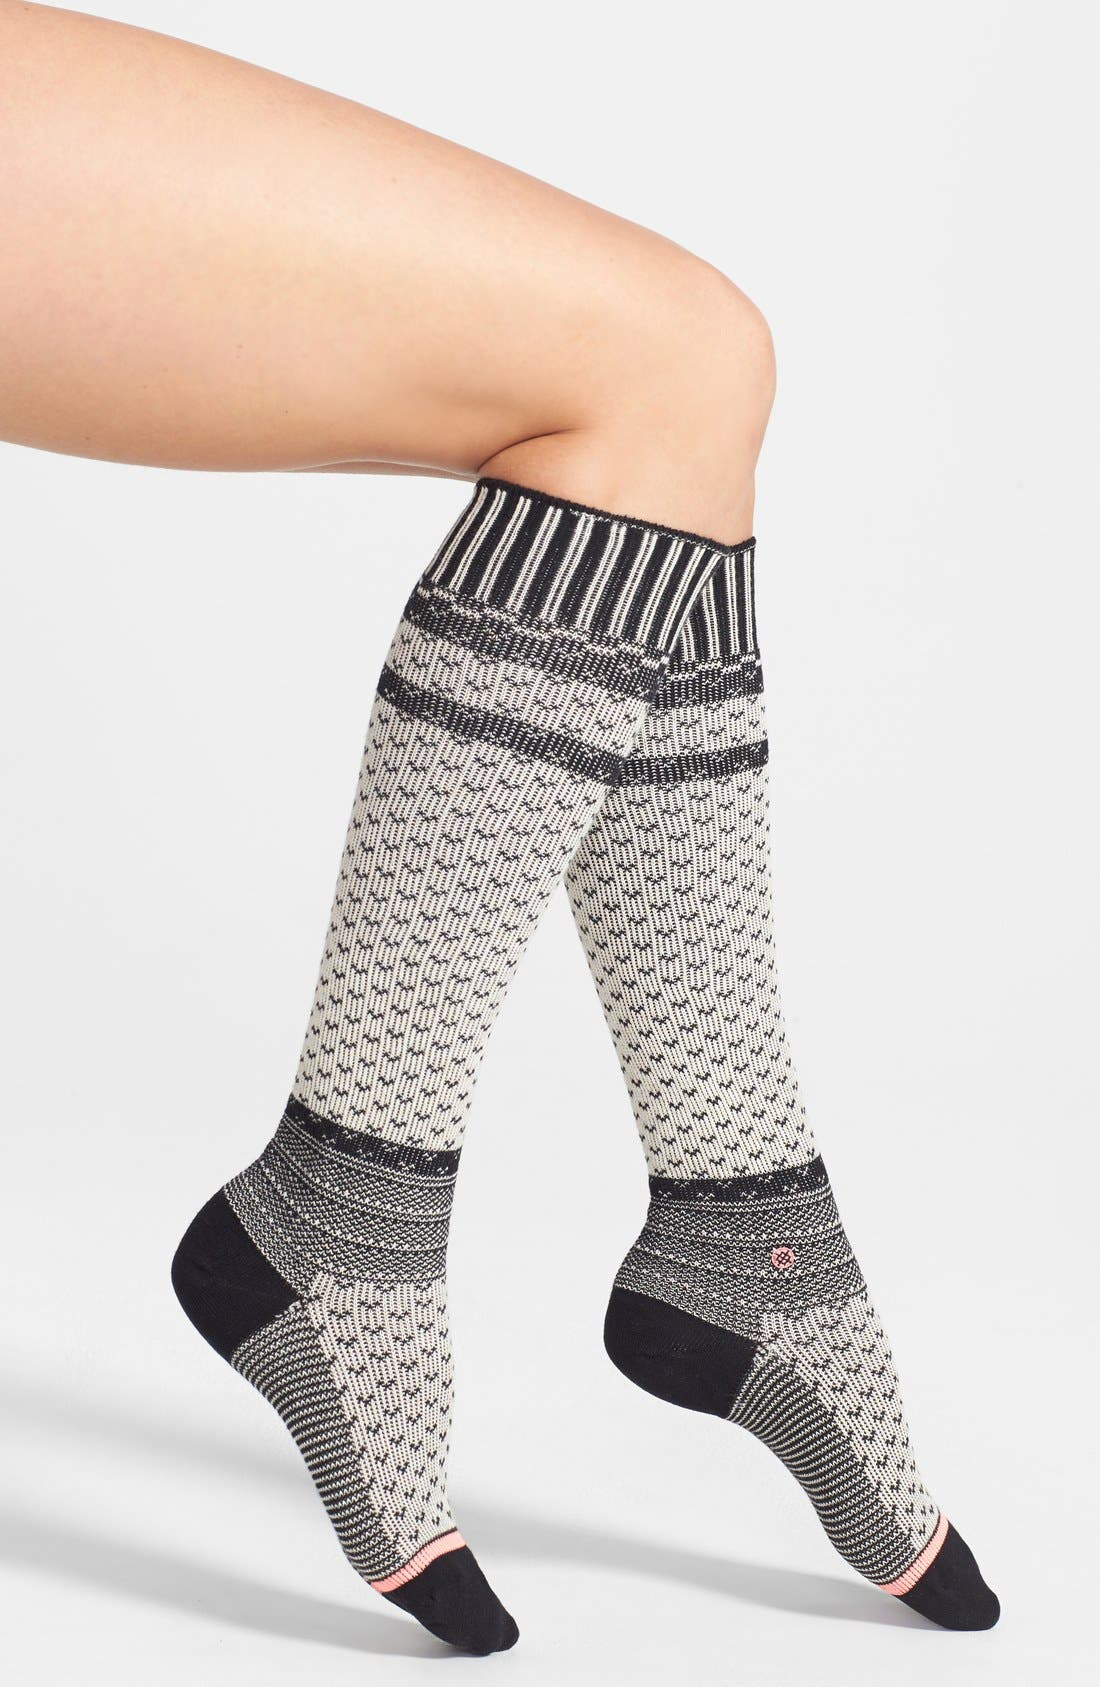 Main Image - Stance 'Frosted' Knee High Socks